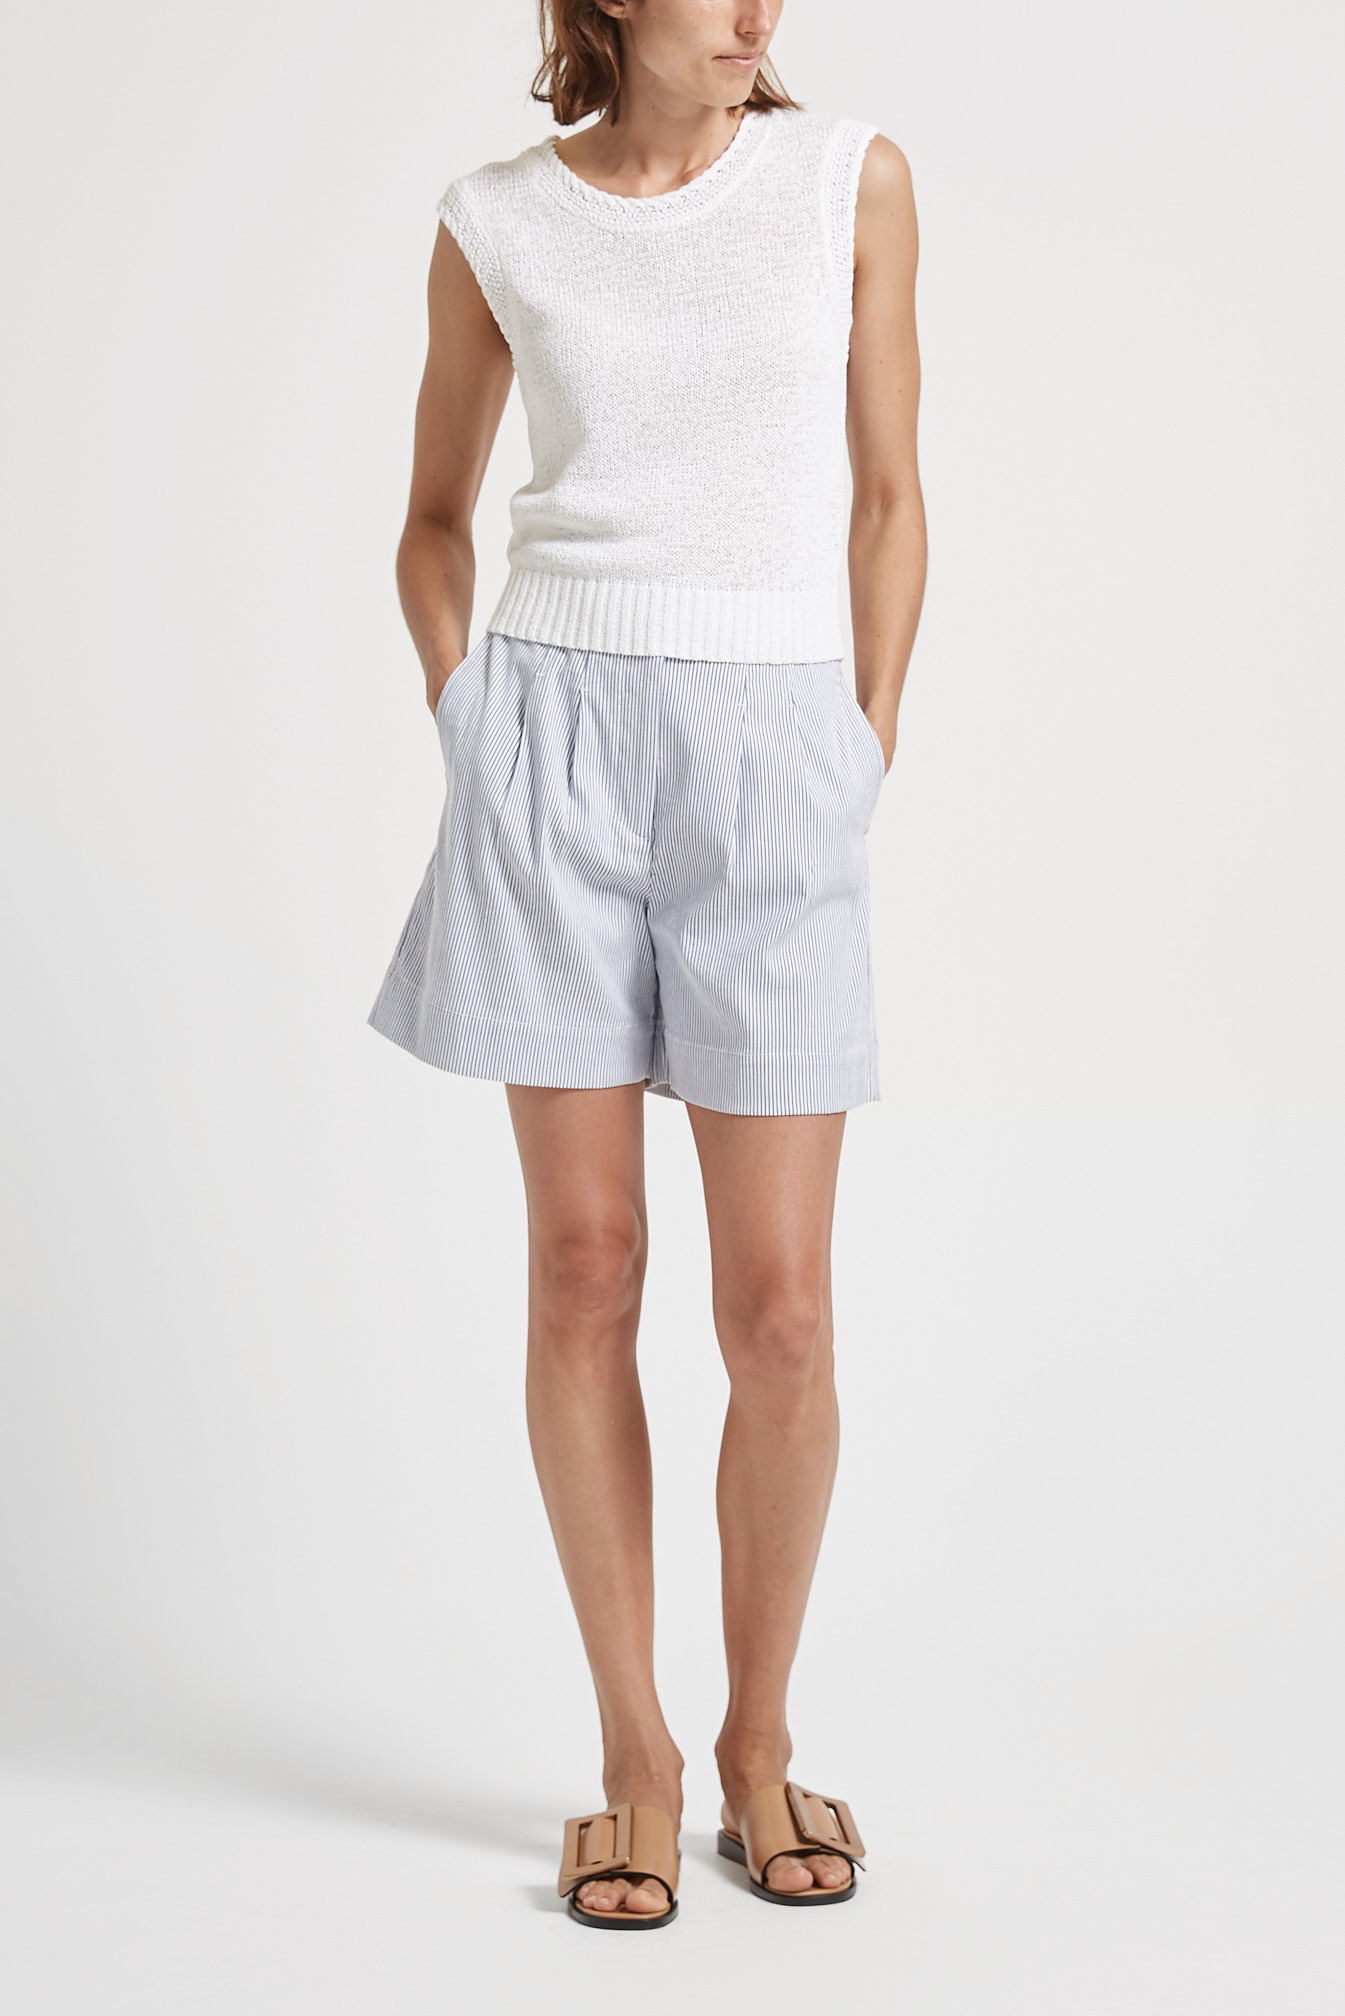 NEW-SABA-WOMENS-Myra-Tailored-Short-Shorts